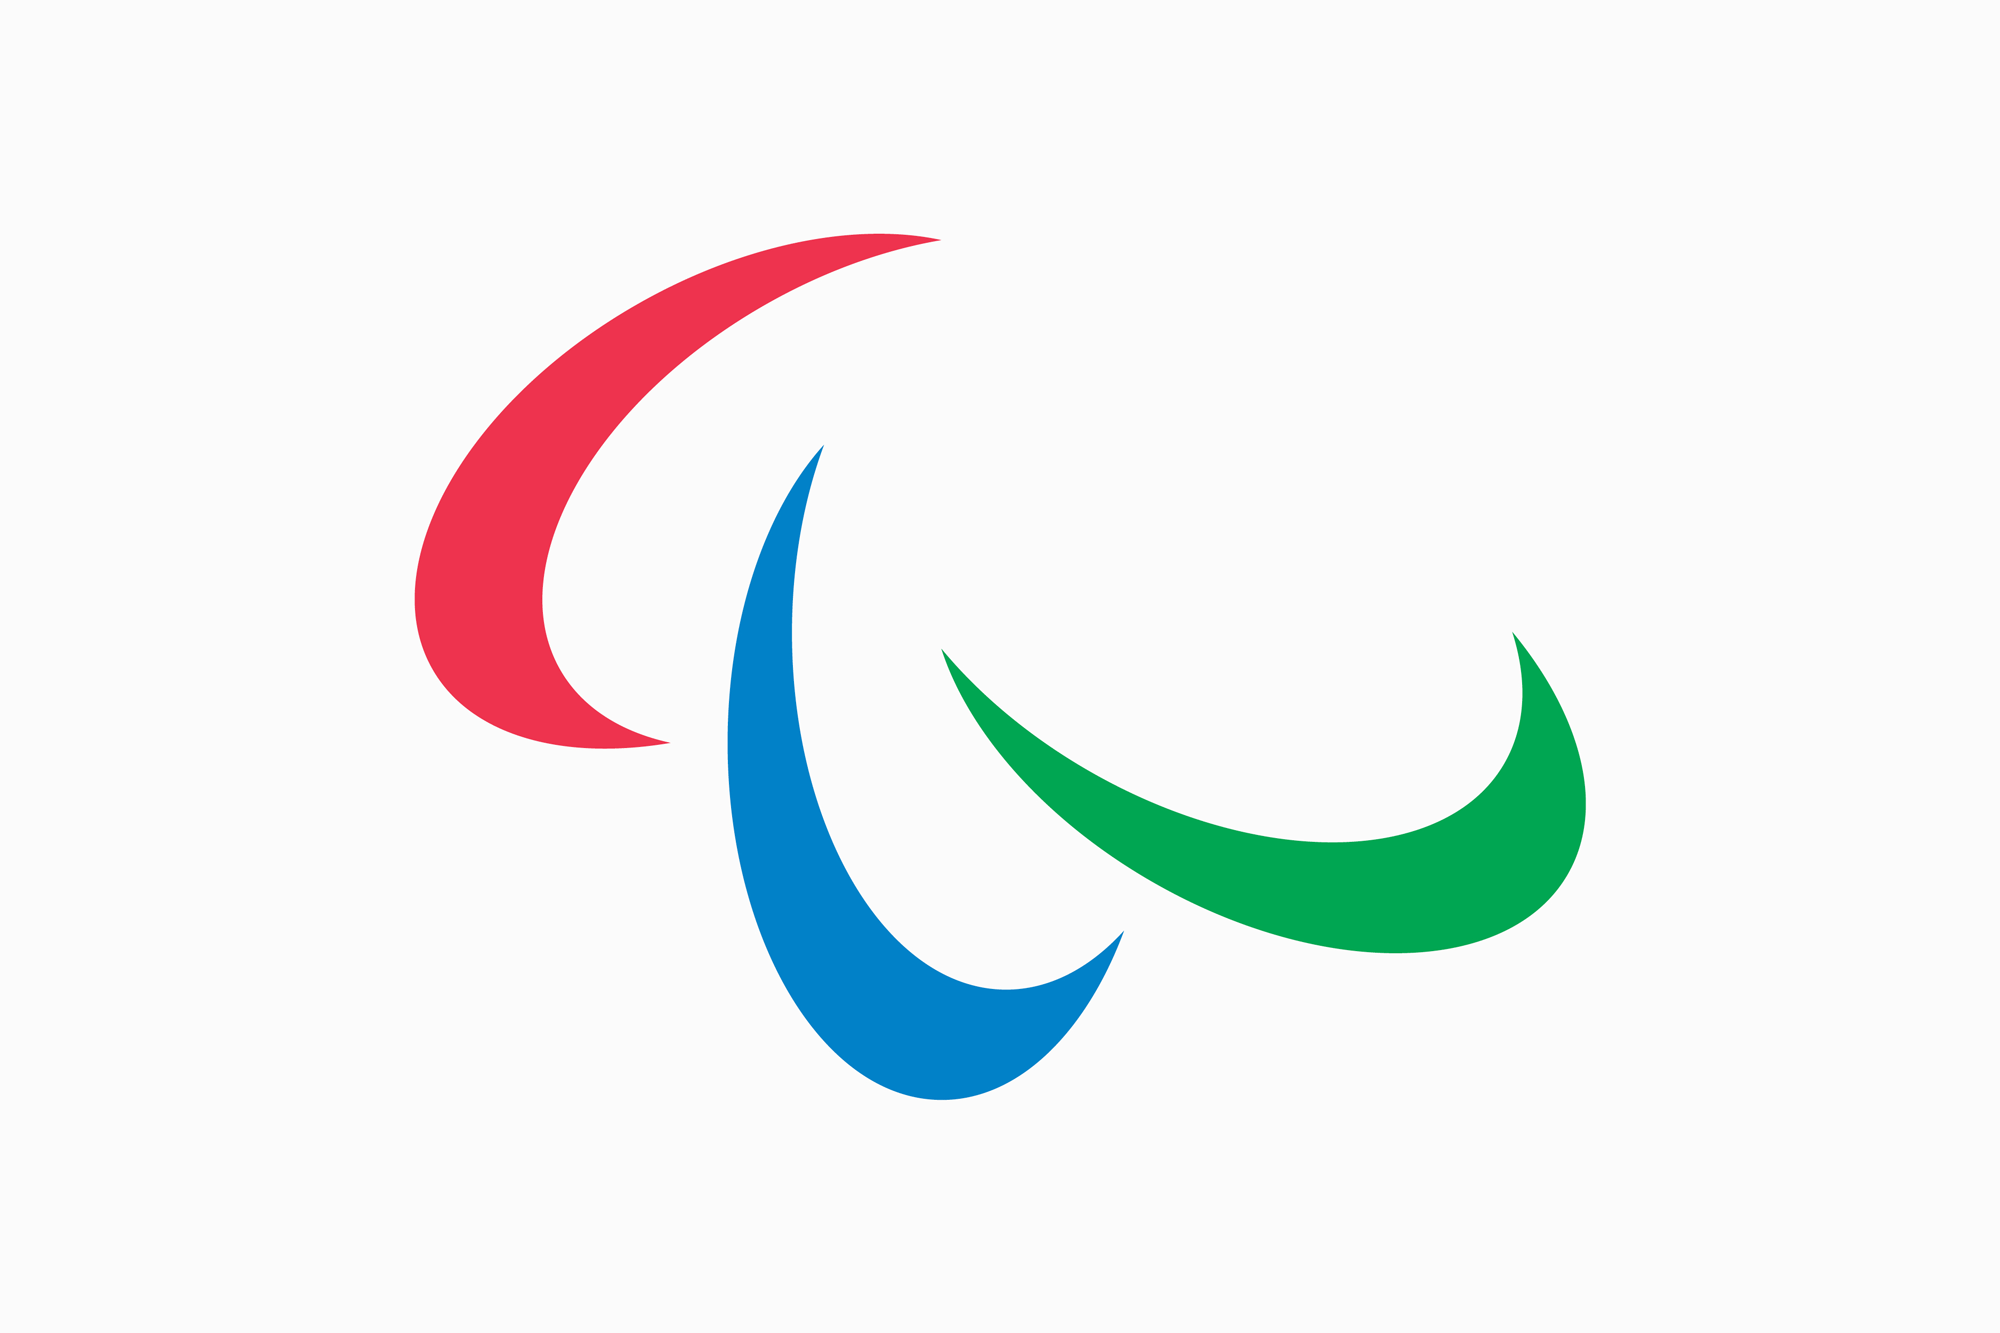 New Logo and Identity for International Paralympic Committee by North